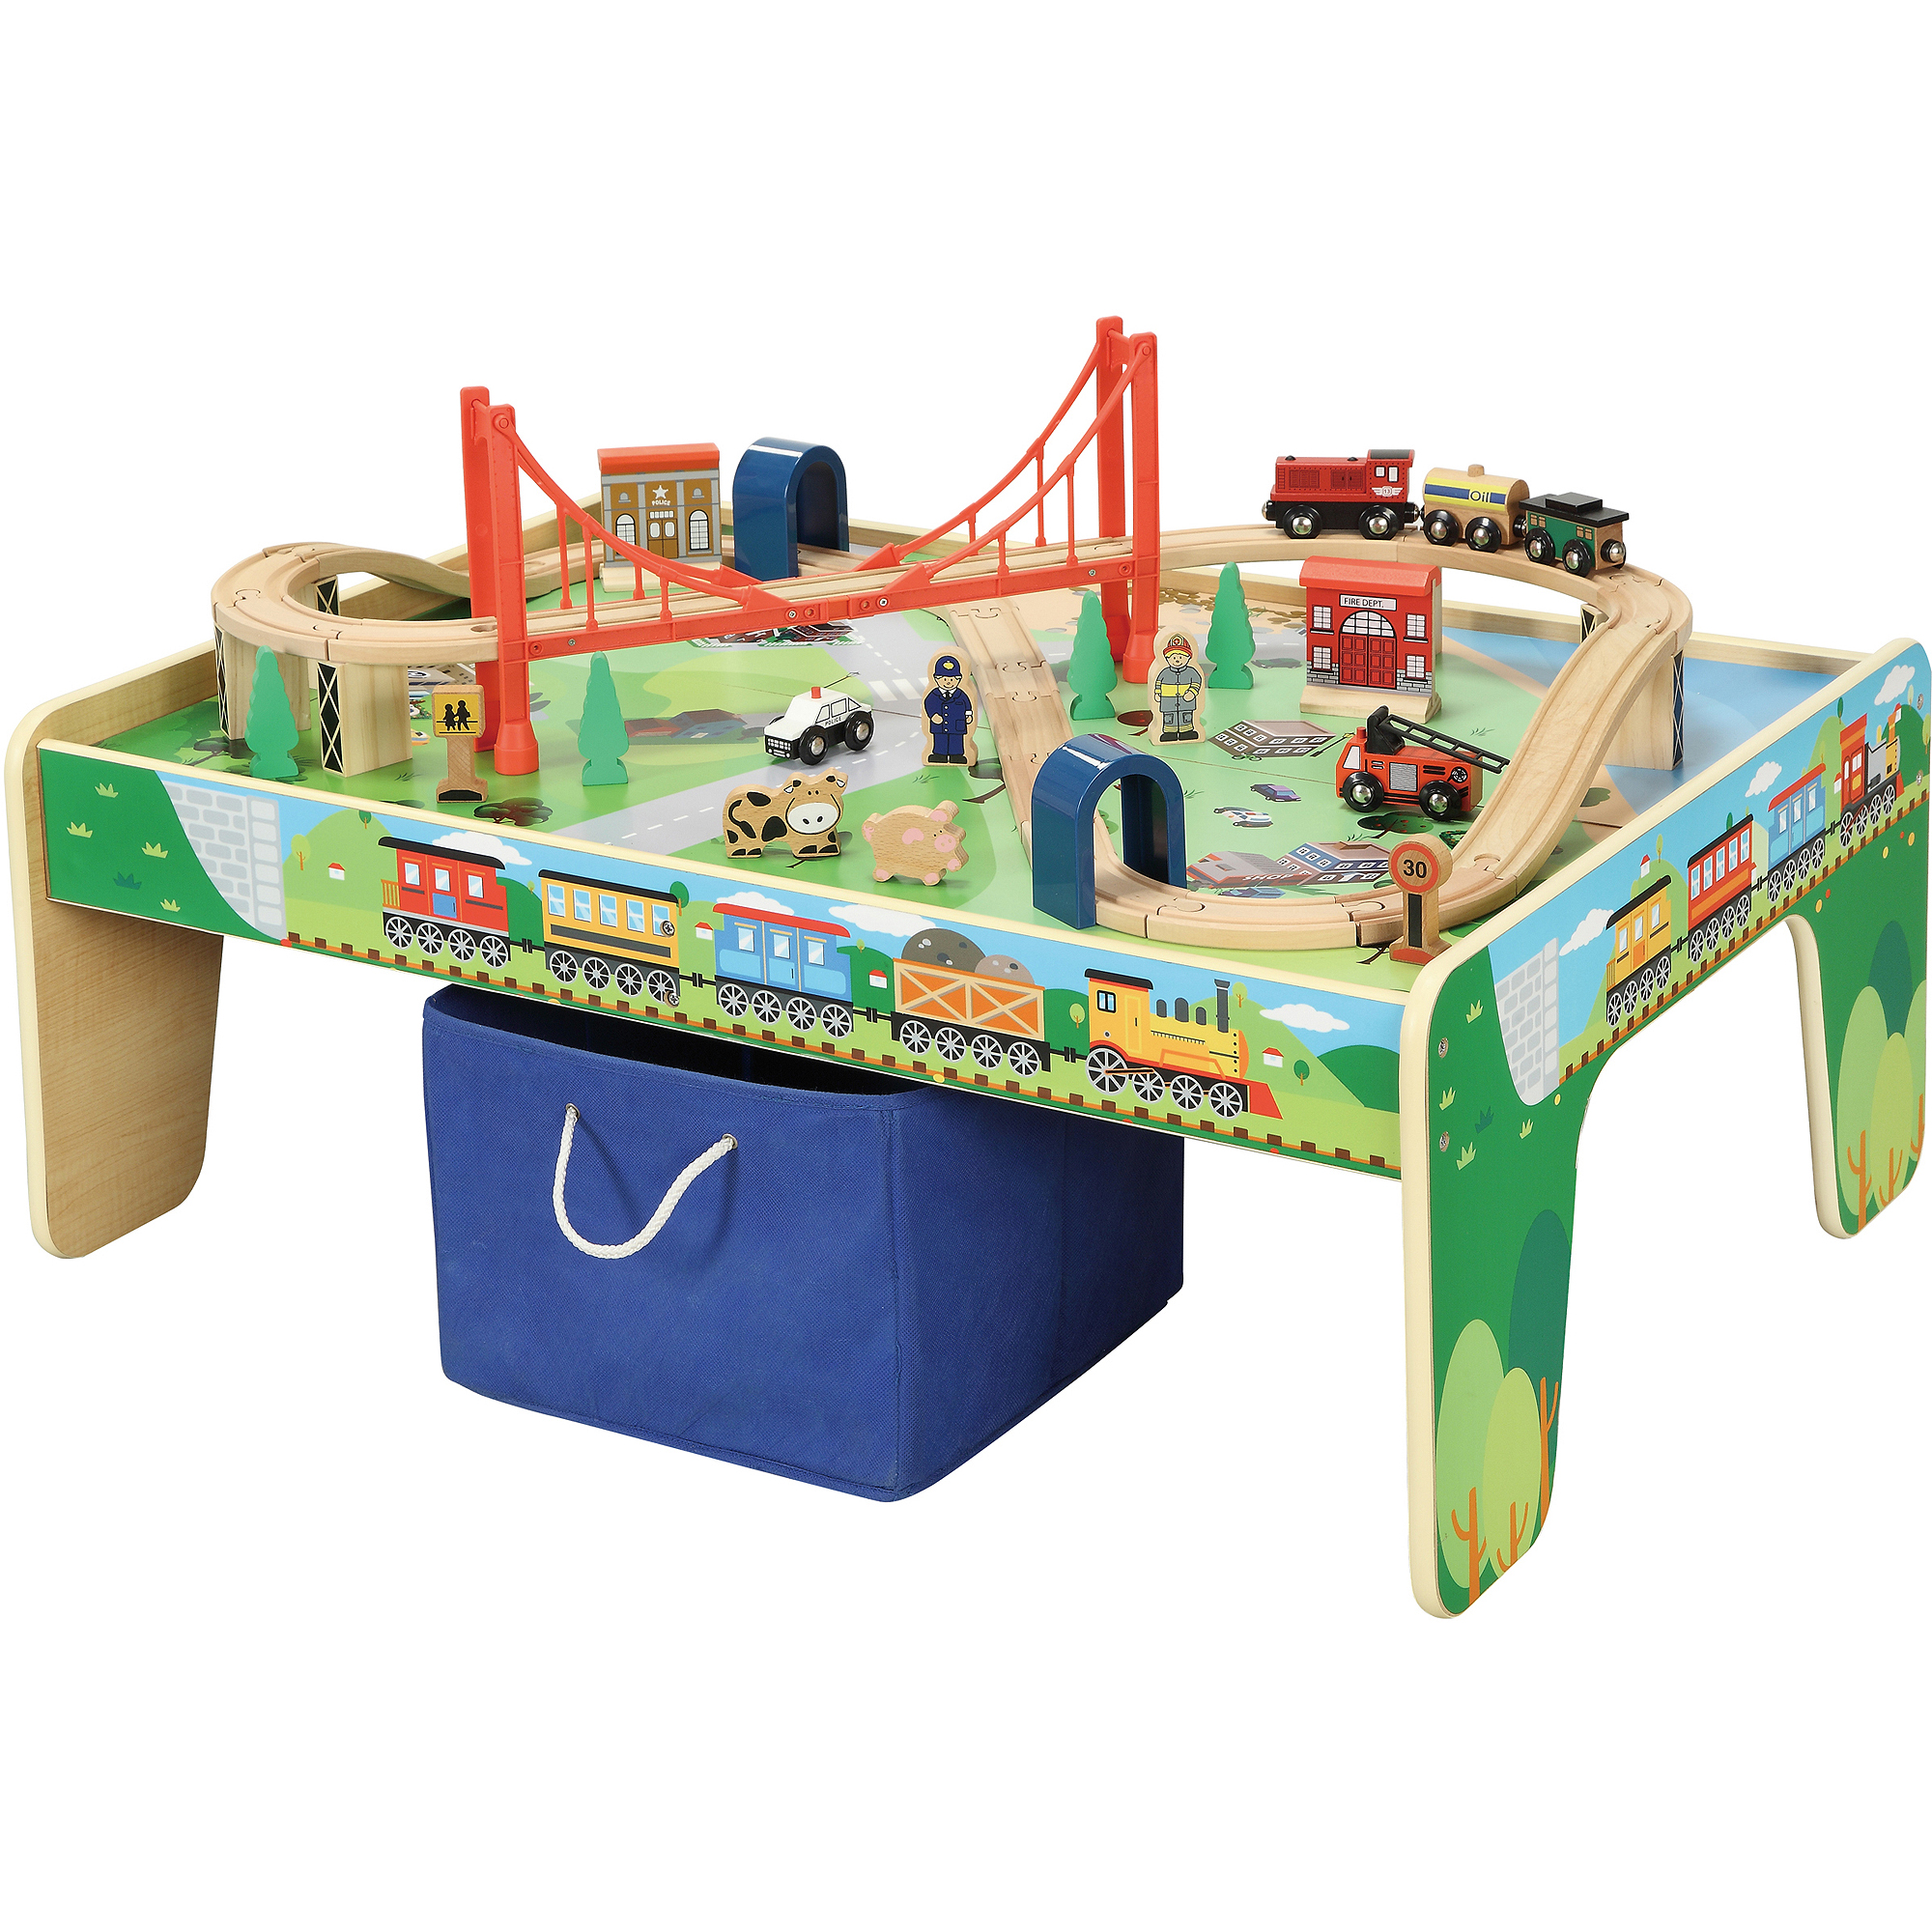 Wooden 50 Piece Train Set With Small Table Only At Walmart   Walmart.com